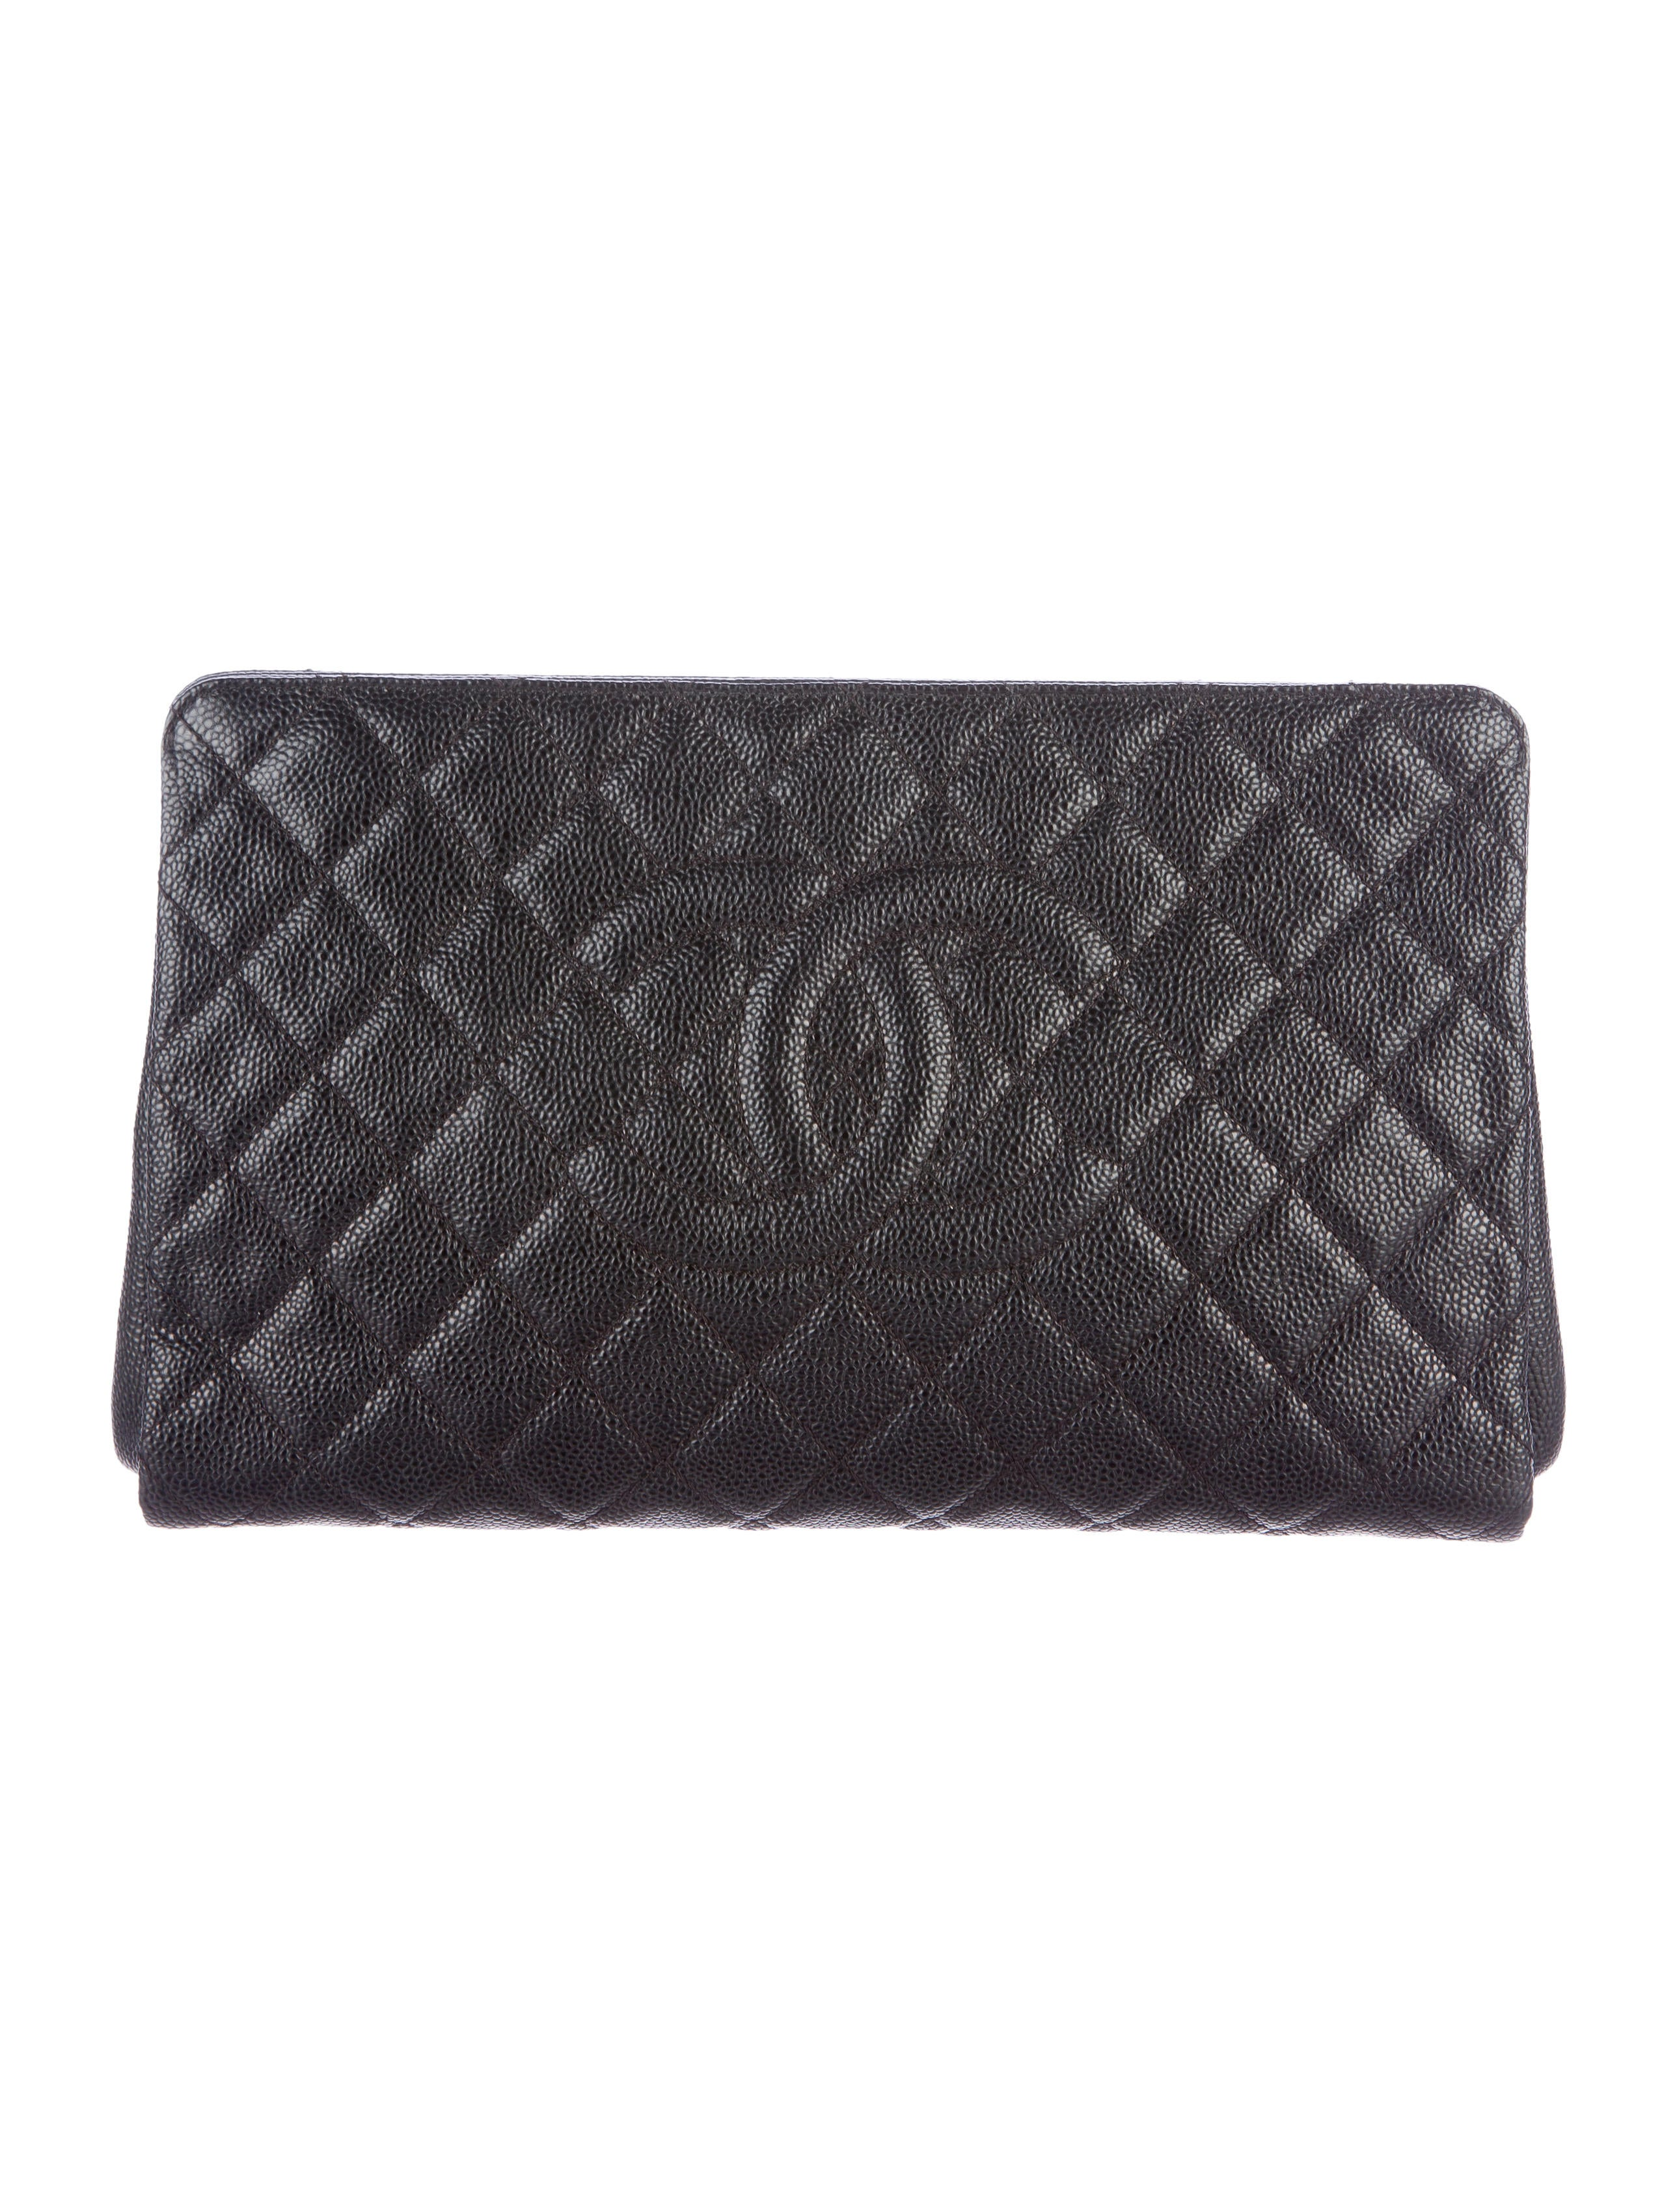 4d0047b49bd4 Chanel Clutch Handbags | Stanford Center for Opportunity Policy in ...